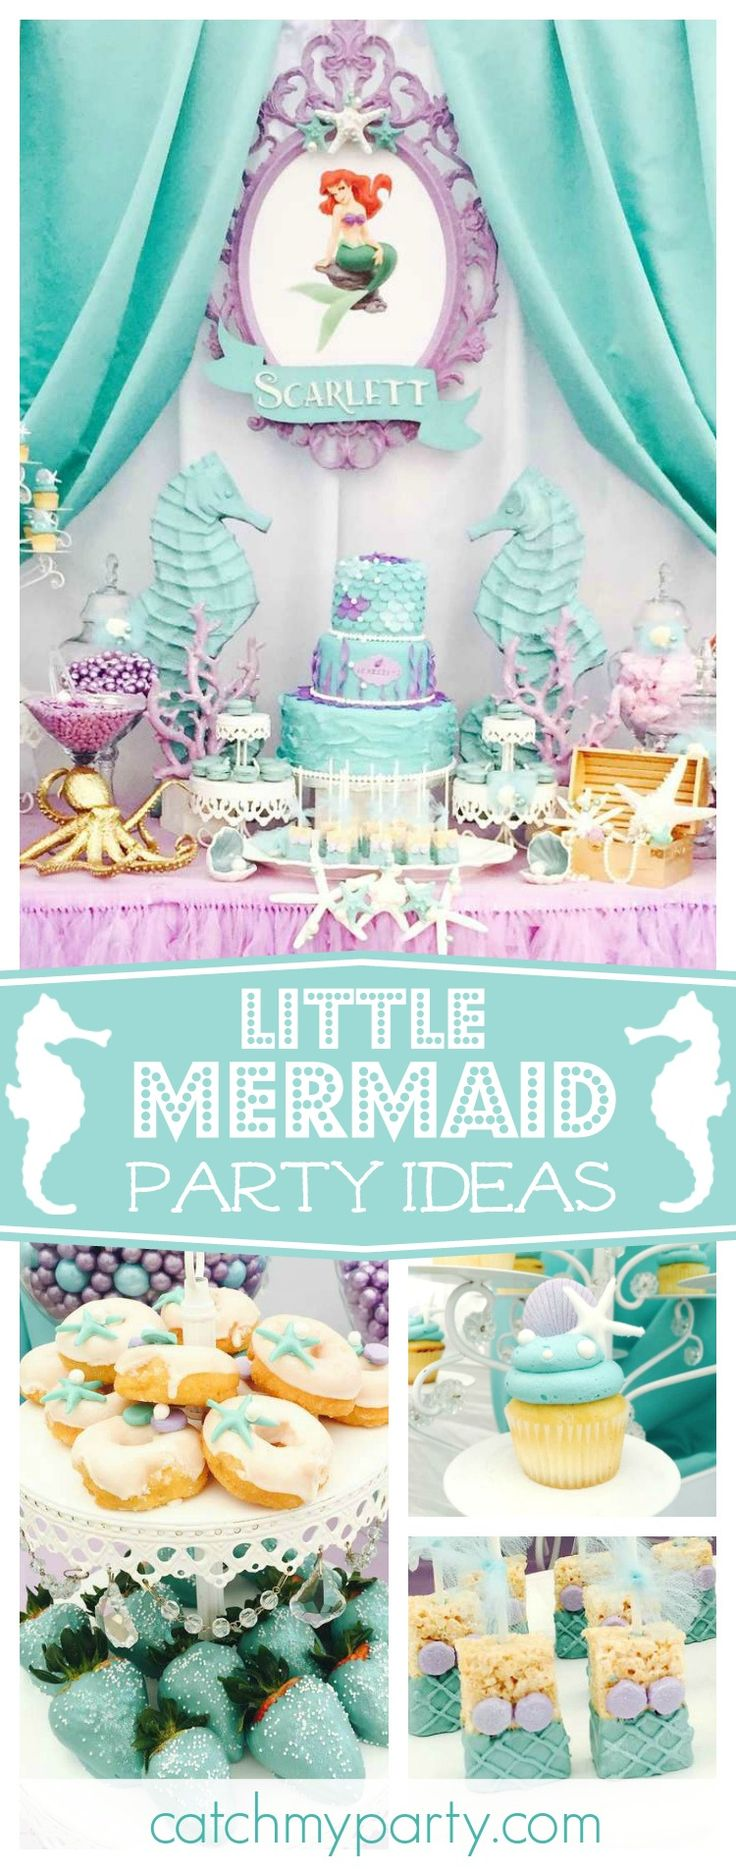 Donu0027t Miss This Pretty Little Mermaid Birthday Party. The Birthday Cake U0026  Sweet